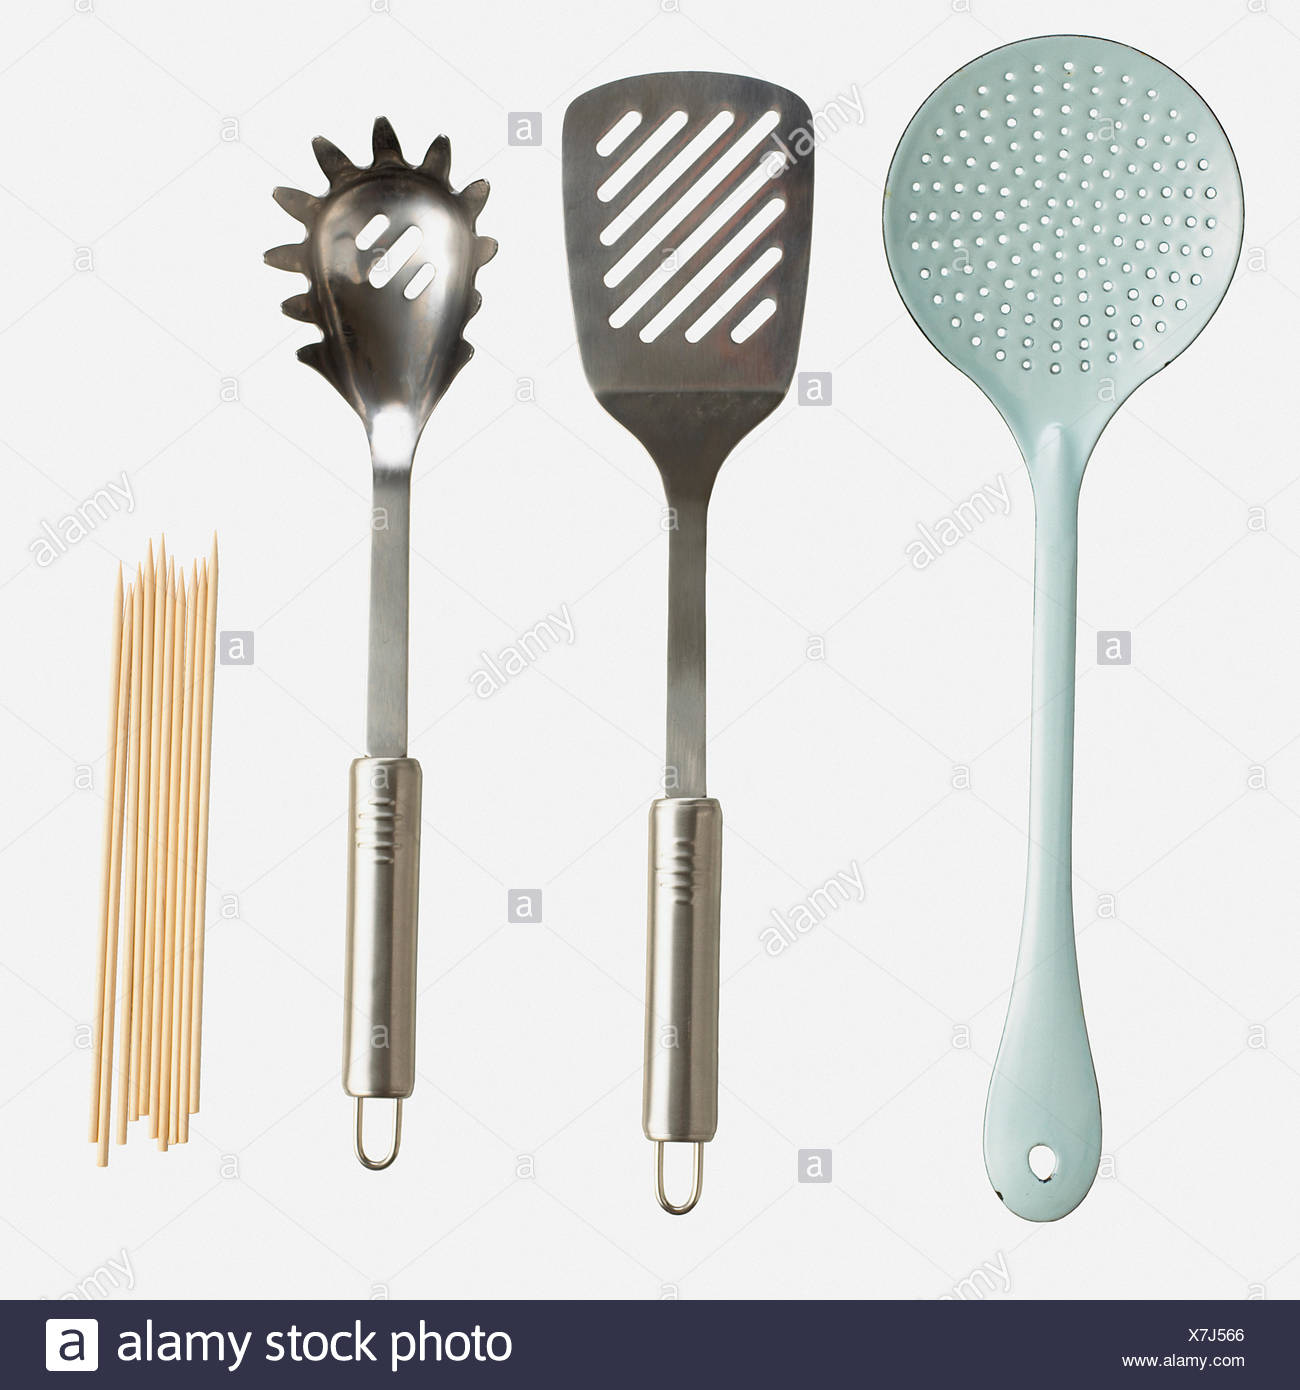 Slotted spoon, spatula, spaghetti claw and skewers Stock Photo